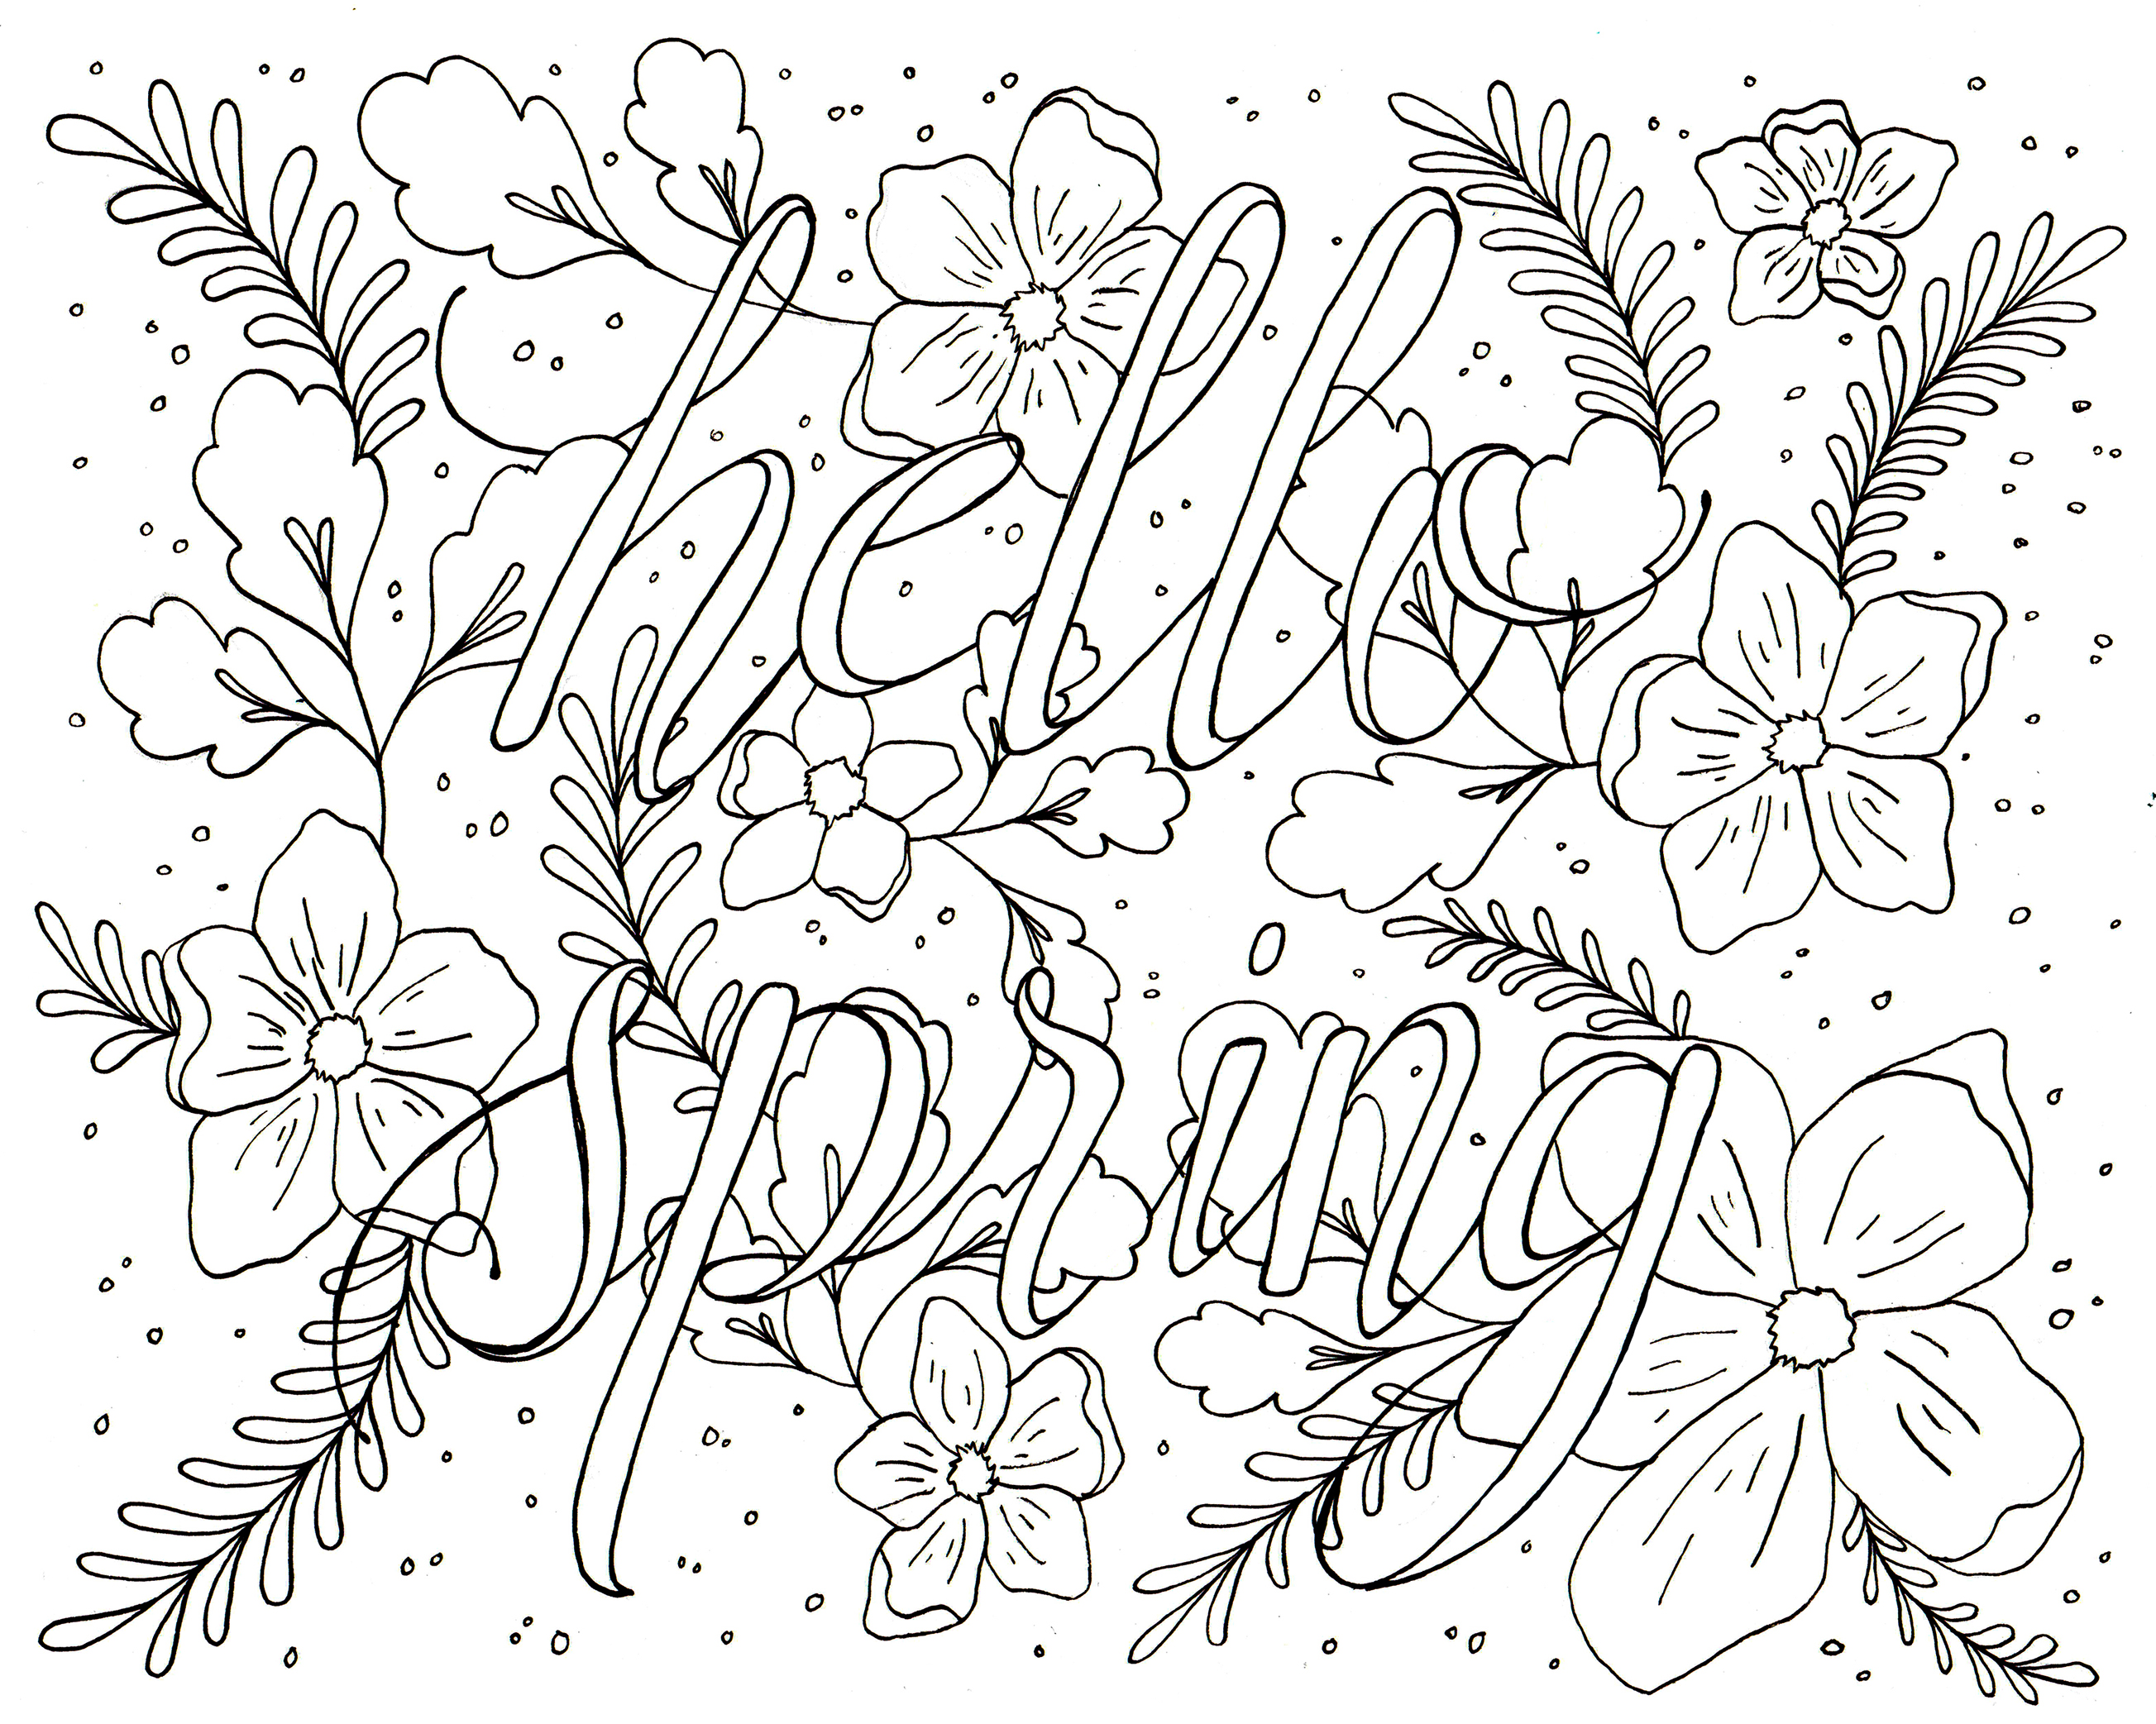 ... Print It Out On Letter Sized Cardstock. The Design Itself Is About 8x10  Inches. Color It In With Markers Or Colored Pencils And Hang It On The Wall  To ...